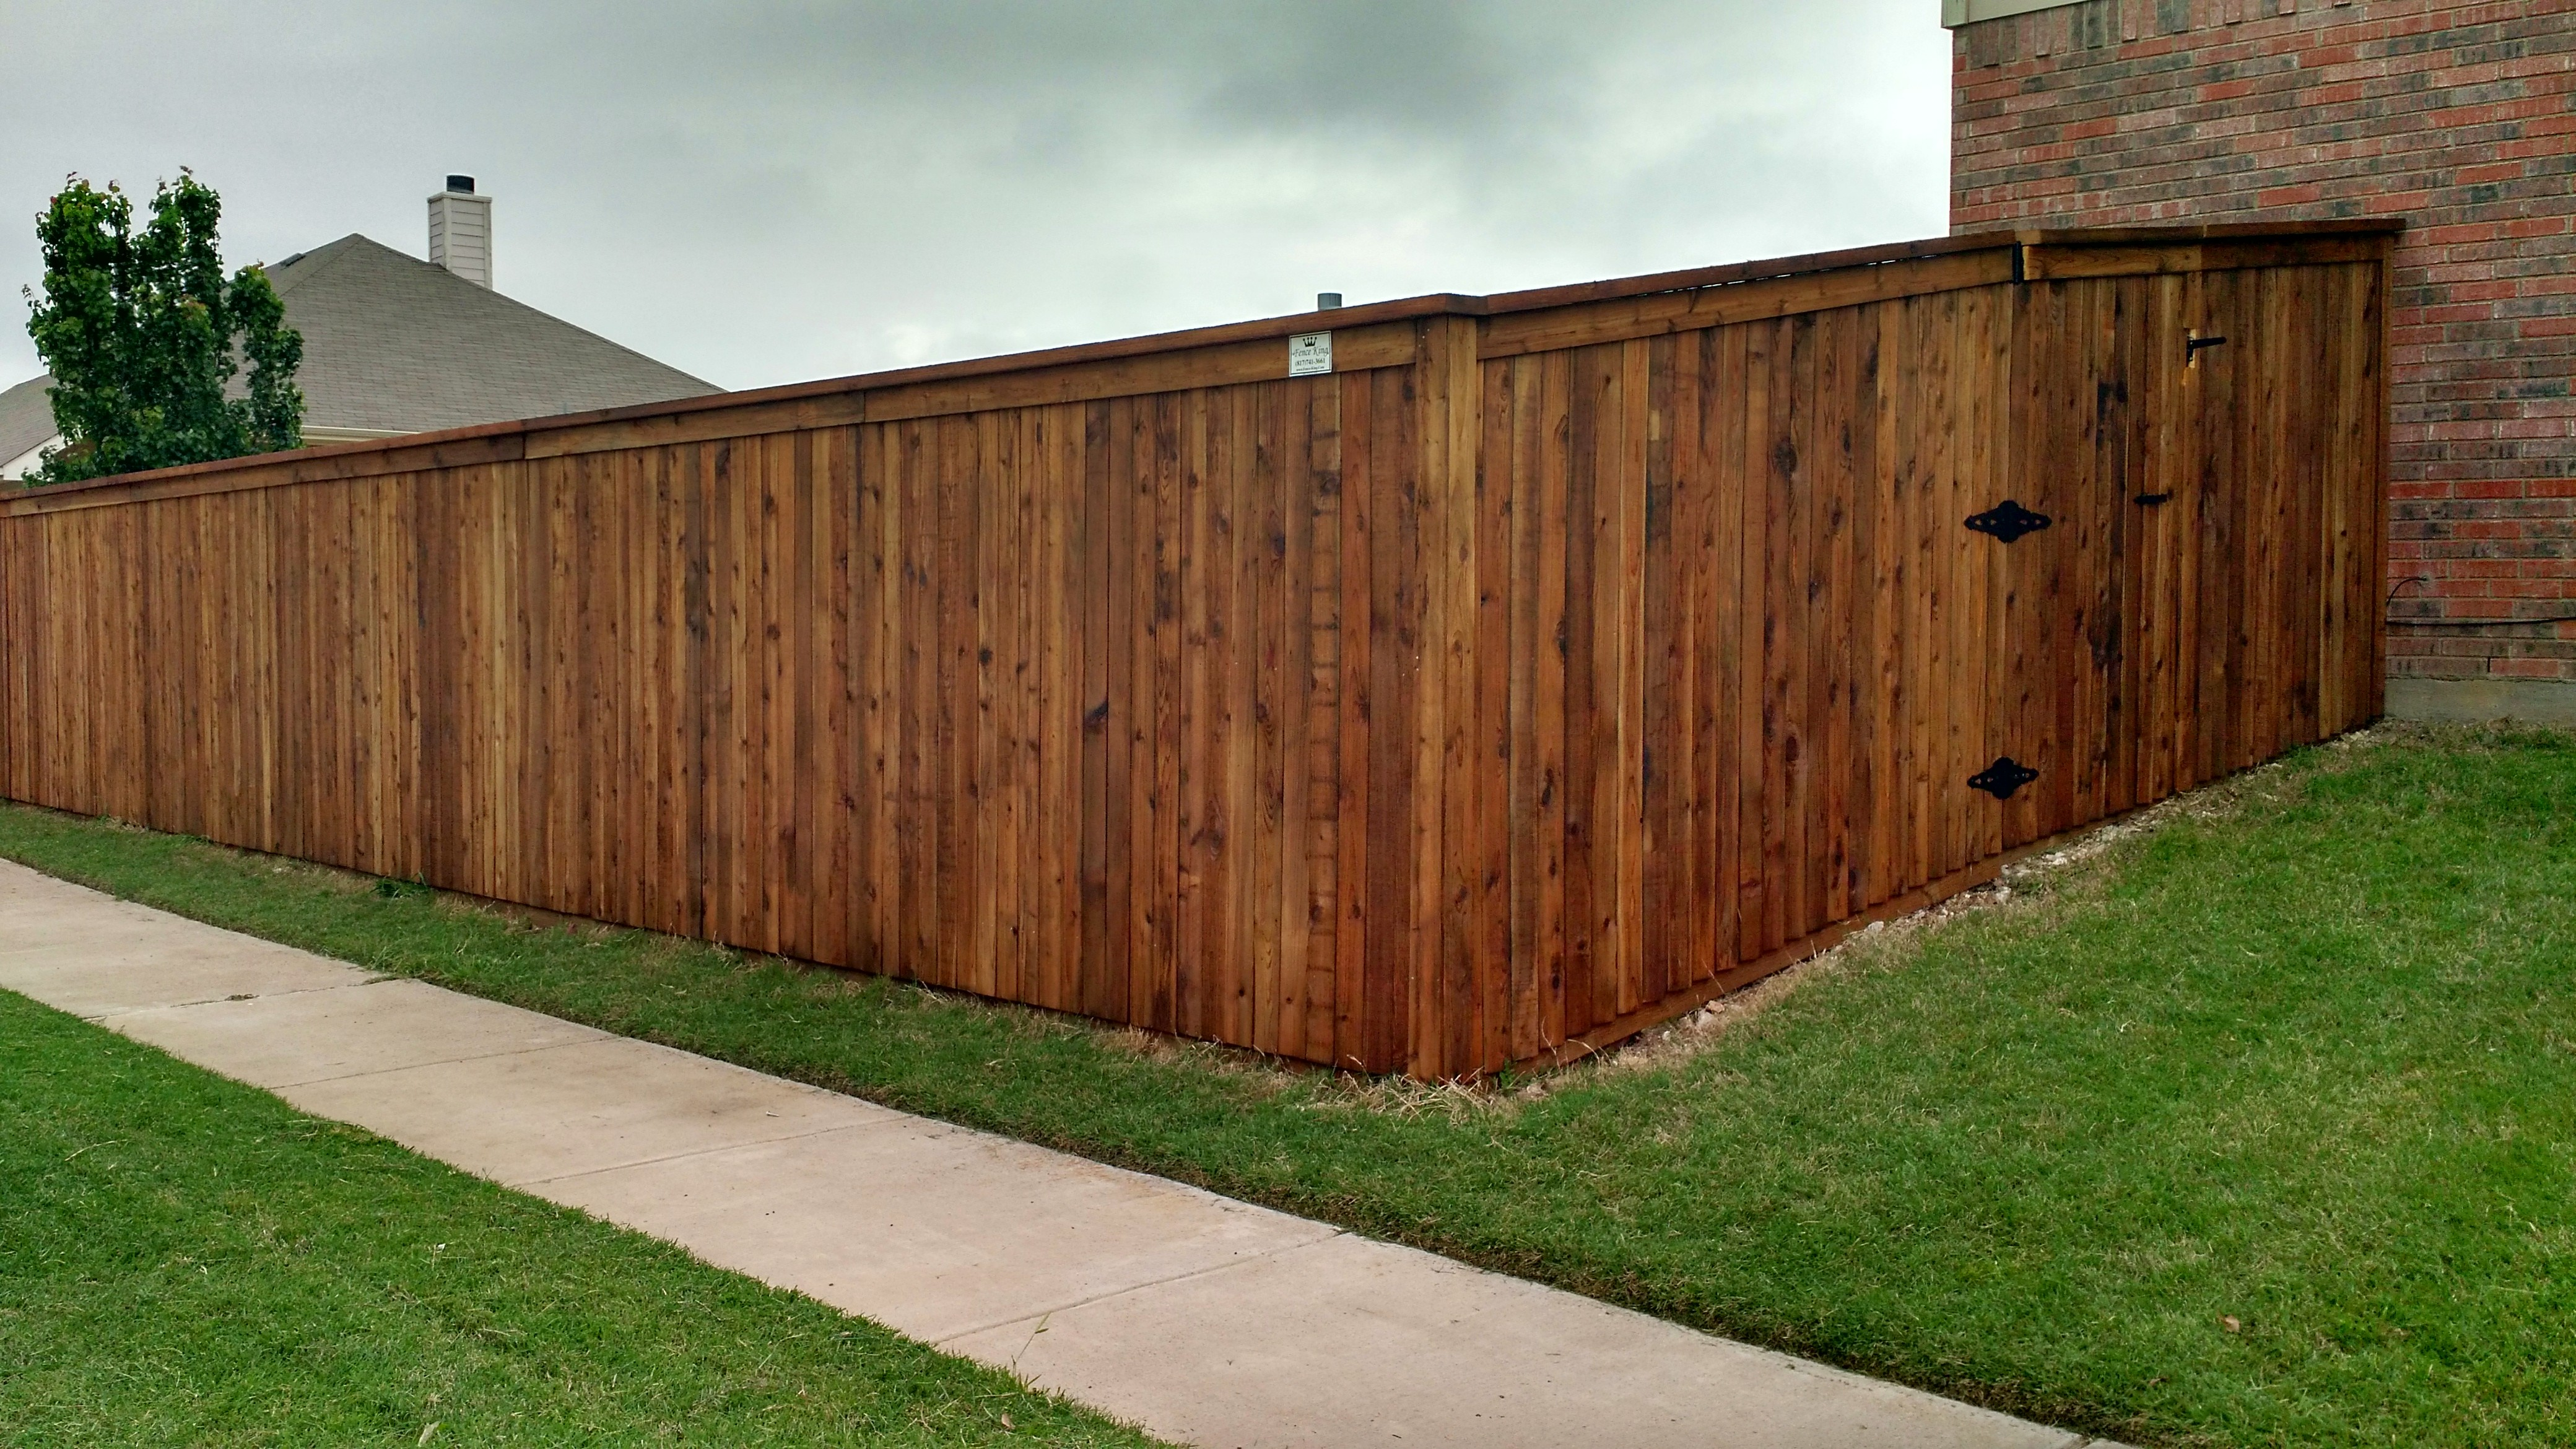 New fences fence king 6 foot tall 4 wide cedar pickets side by side style flat top with cap and rot board pre stained pecan baanklon Images